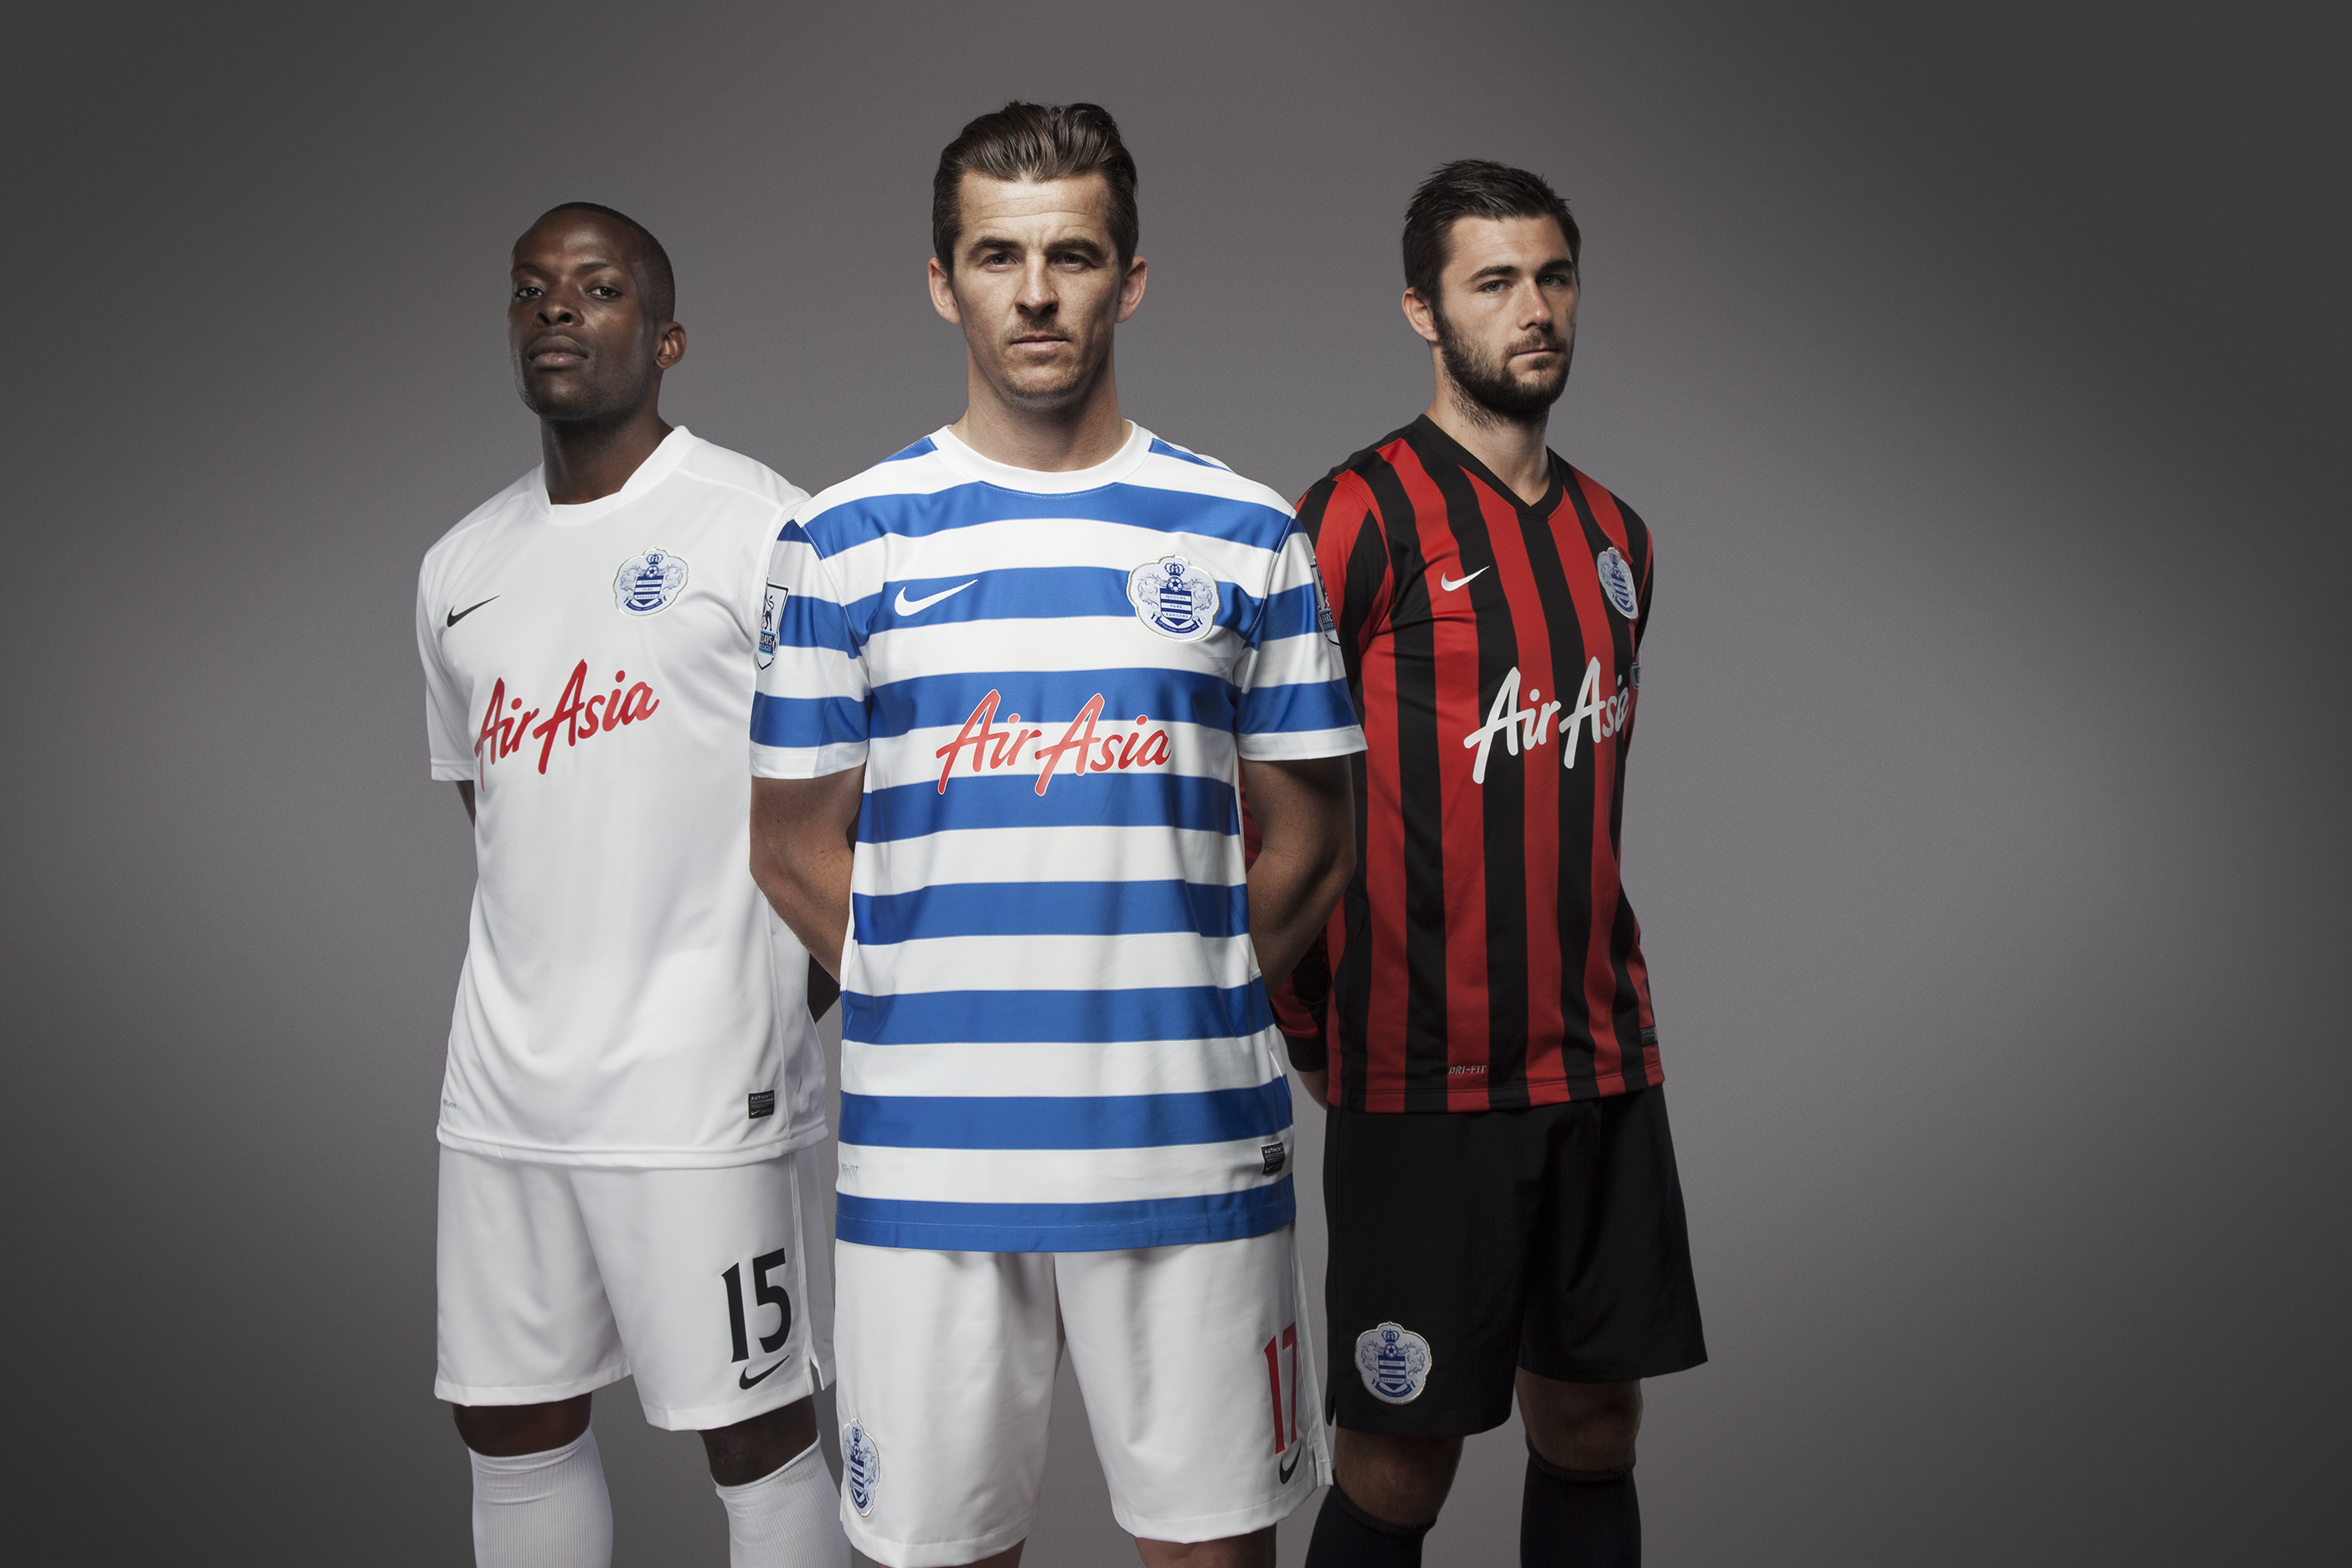 Joey Barton, centre, with Nedum Onouha, left, and Charlie Austin at the launch of the new QPR Nike kit (Picture: Nike)